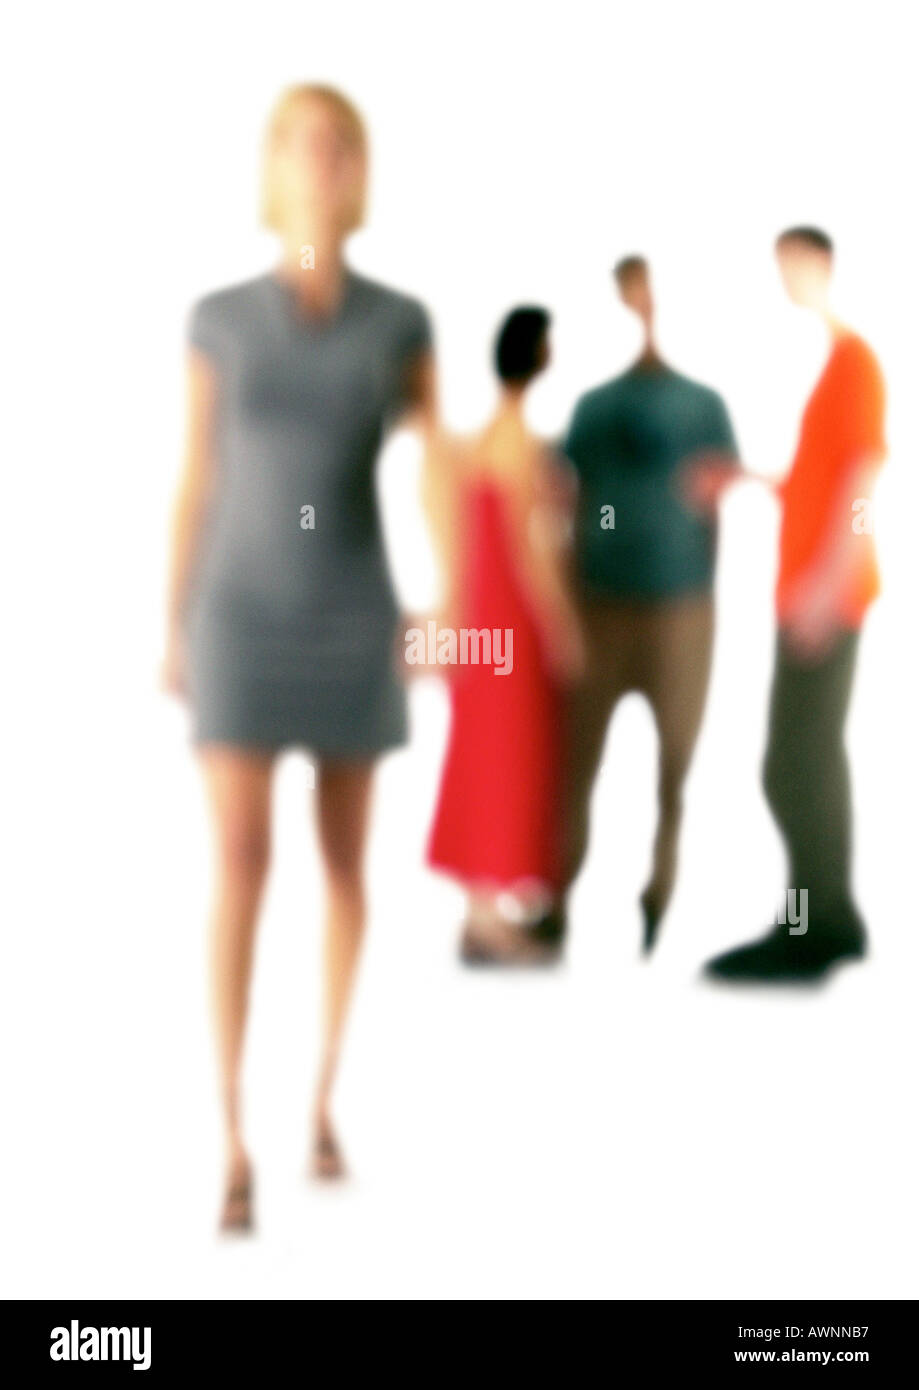 Silhouette of woman standing apart from group of people, on white background, defocused - Stock Image